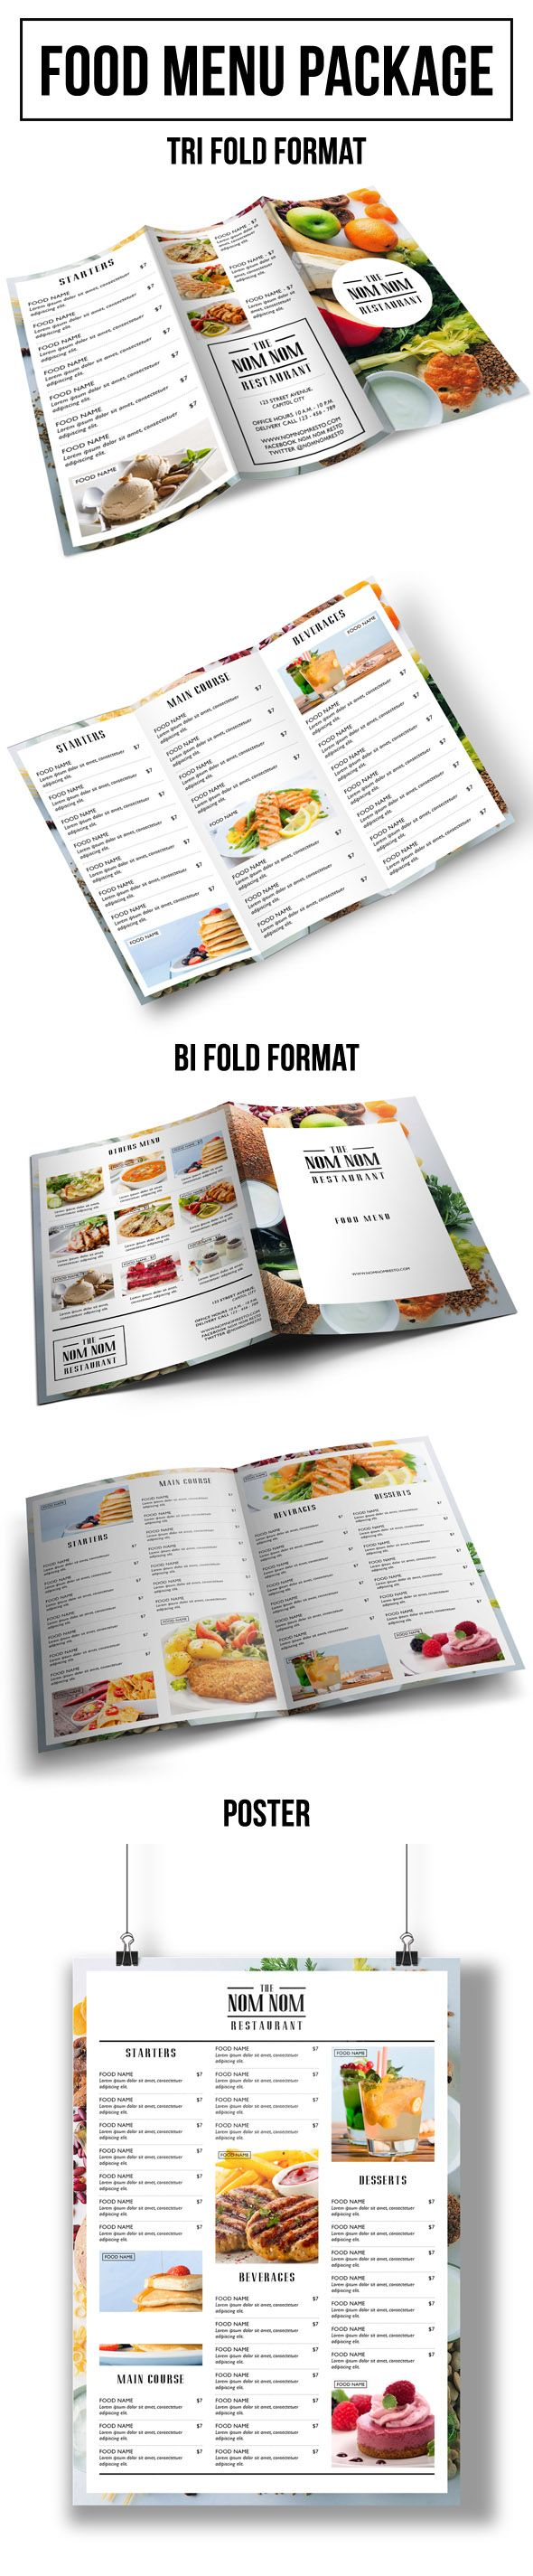 It is a food menu package for your restaurant / cafe purposes. Available in letter size in indd format with 2 kinds of format which is: tri fold and bi fold. All you need to do is just change the logo, text and images. You can easily change the colour too. If you like it and find it useful click on the link provided. :)